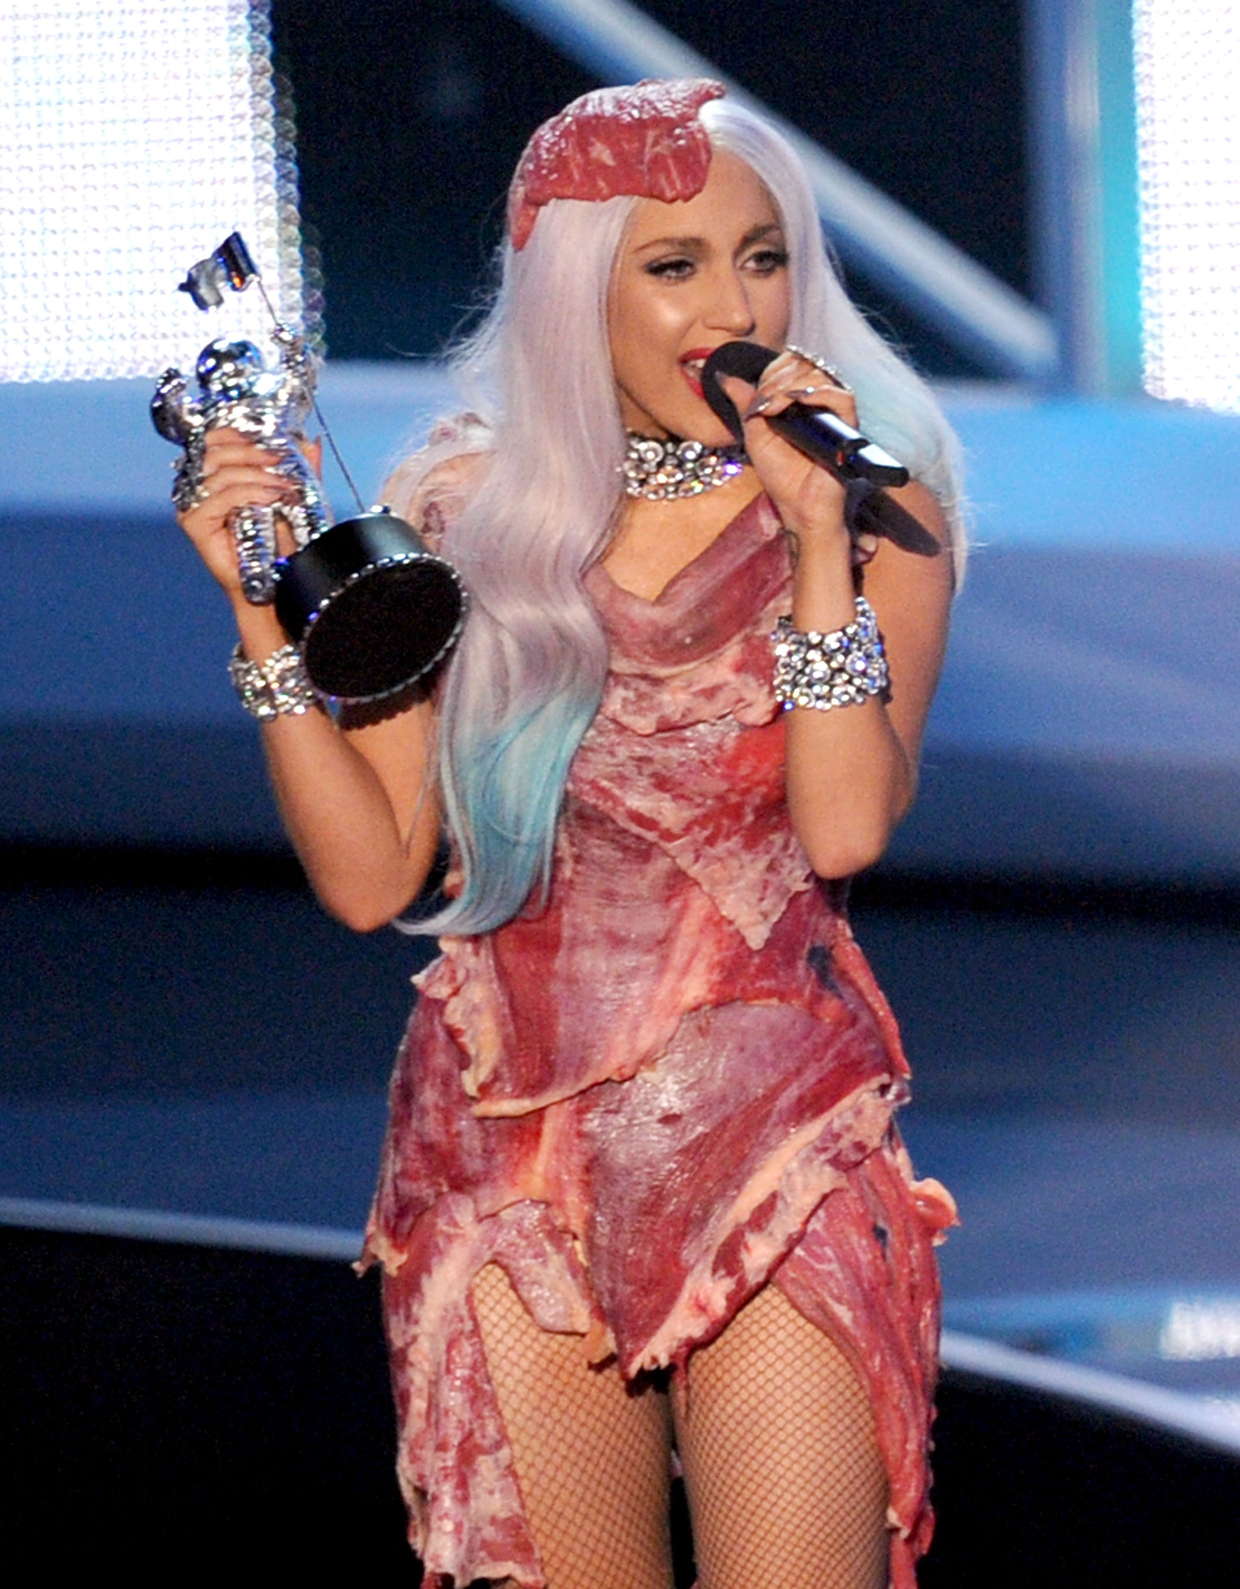 LOS ANGELES, CA - SEPTEMBER 12:  Singer Lady Gaga accepts the Video of the Year award onstage during the 2010 MTV Video Music Awards at NOKIA Theatre L.A. LIVE on September 12, 2010 in Los Angeles, California.  (Photo by Kevin Winter/Getty Images) *** Local Caption *** Lady Gaga